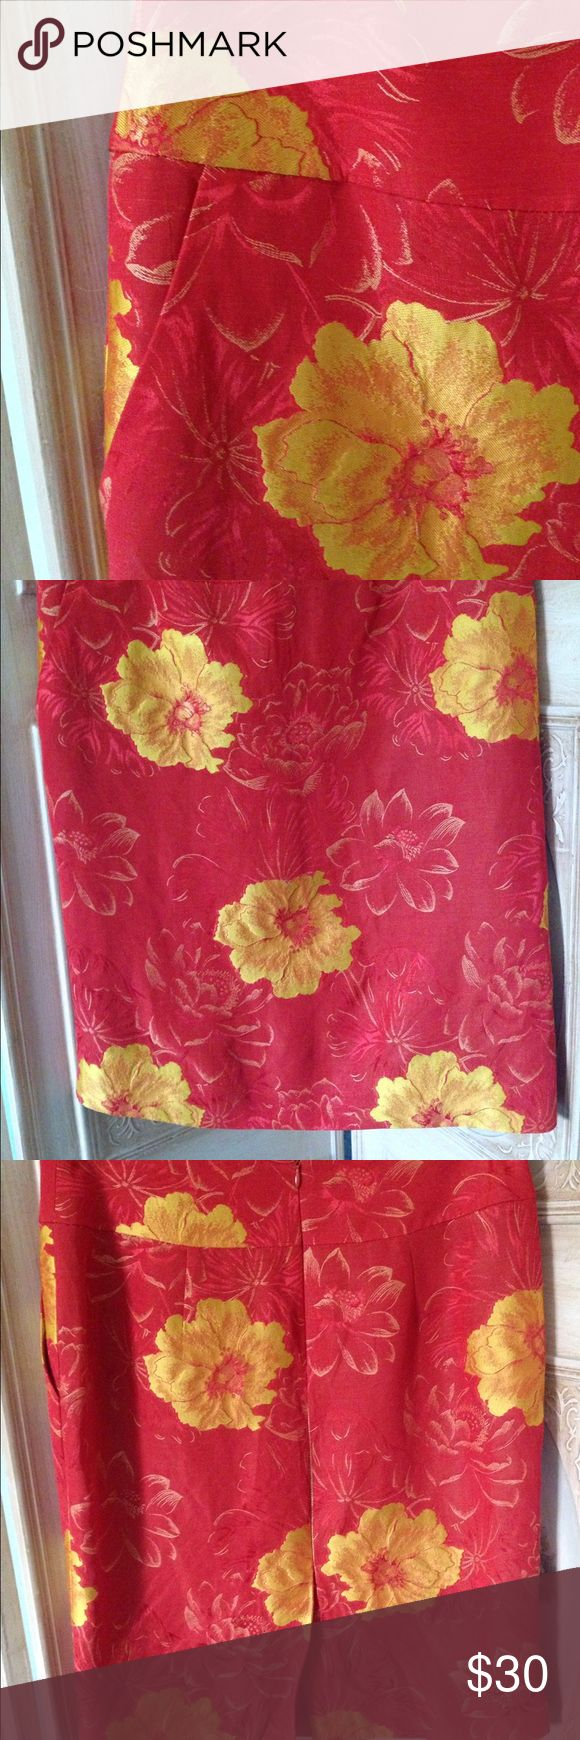 Bright orange & yellow silk lined pencil skirt. Stunning skirt. Looking for new owner who can do it justice. EUC. Talbots Skirts Pencil